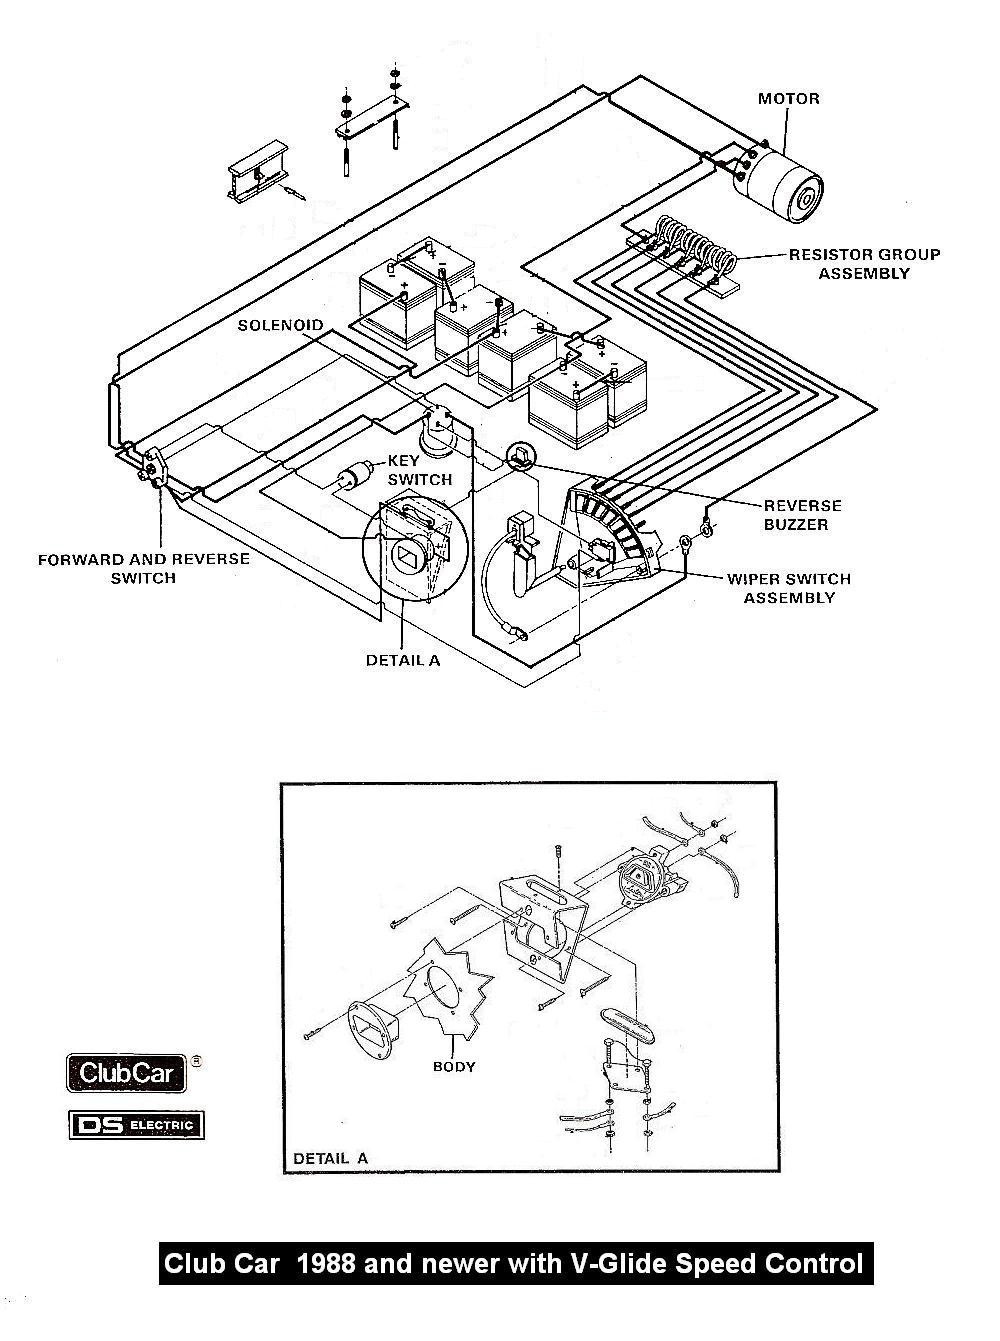 Club Car Ignition Switch Wiring Diagram Inspirational